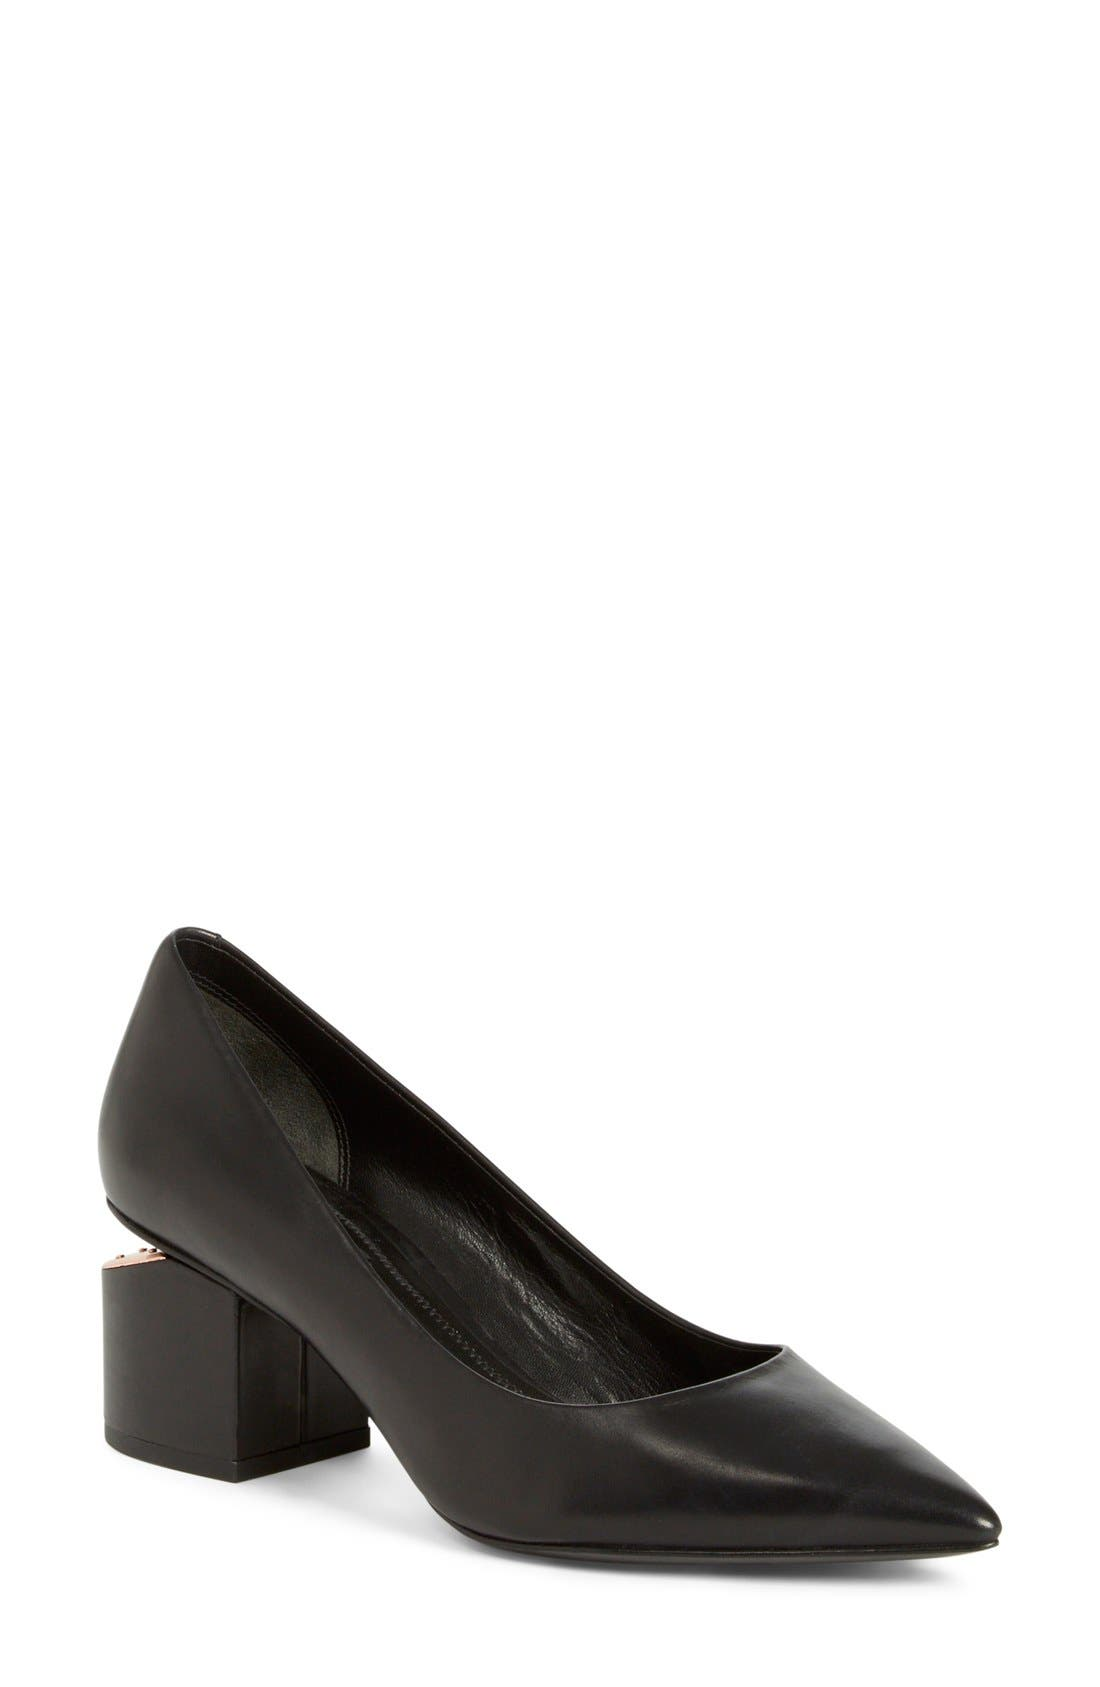 'Simona' Block Heel Pump,                         Main,                         color,